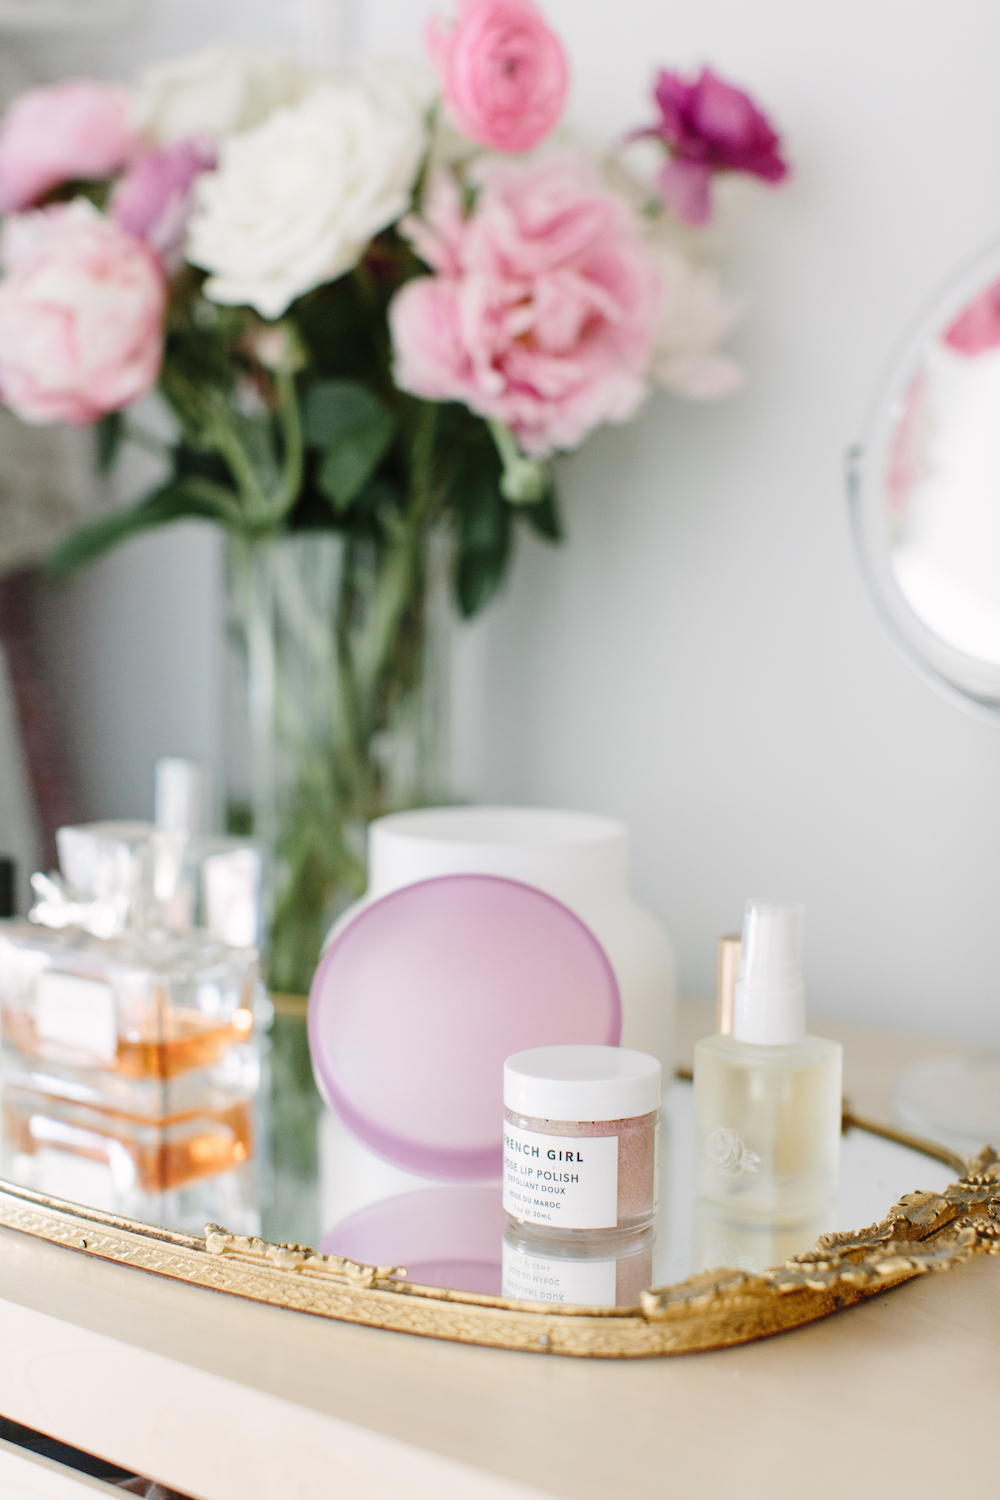 vanity with beauty details and must have products